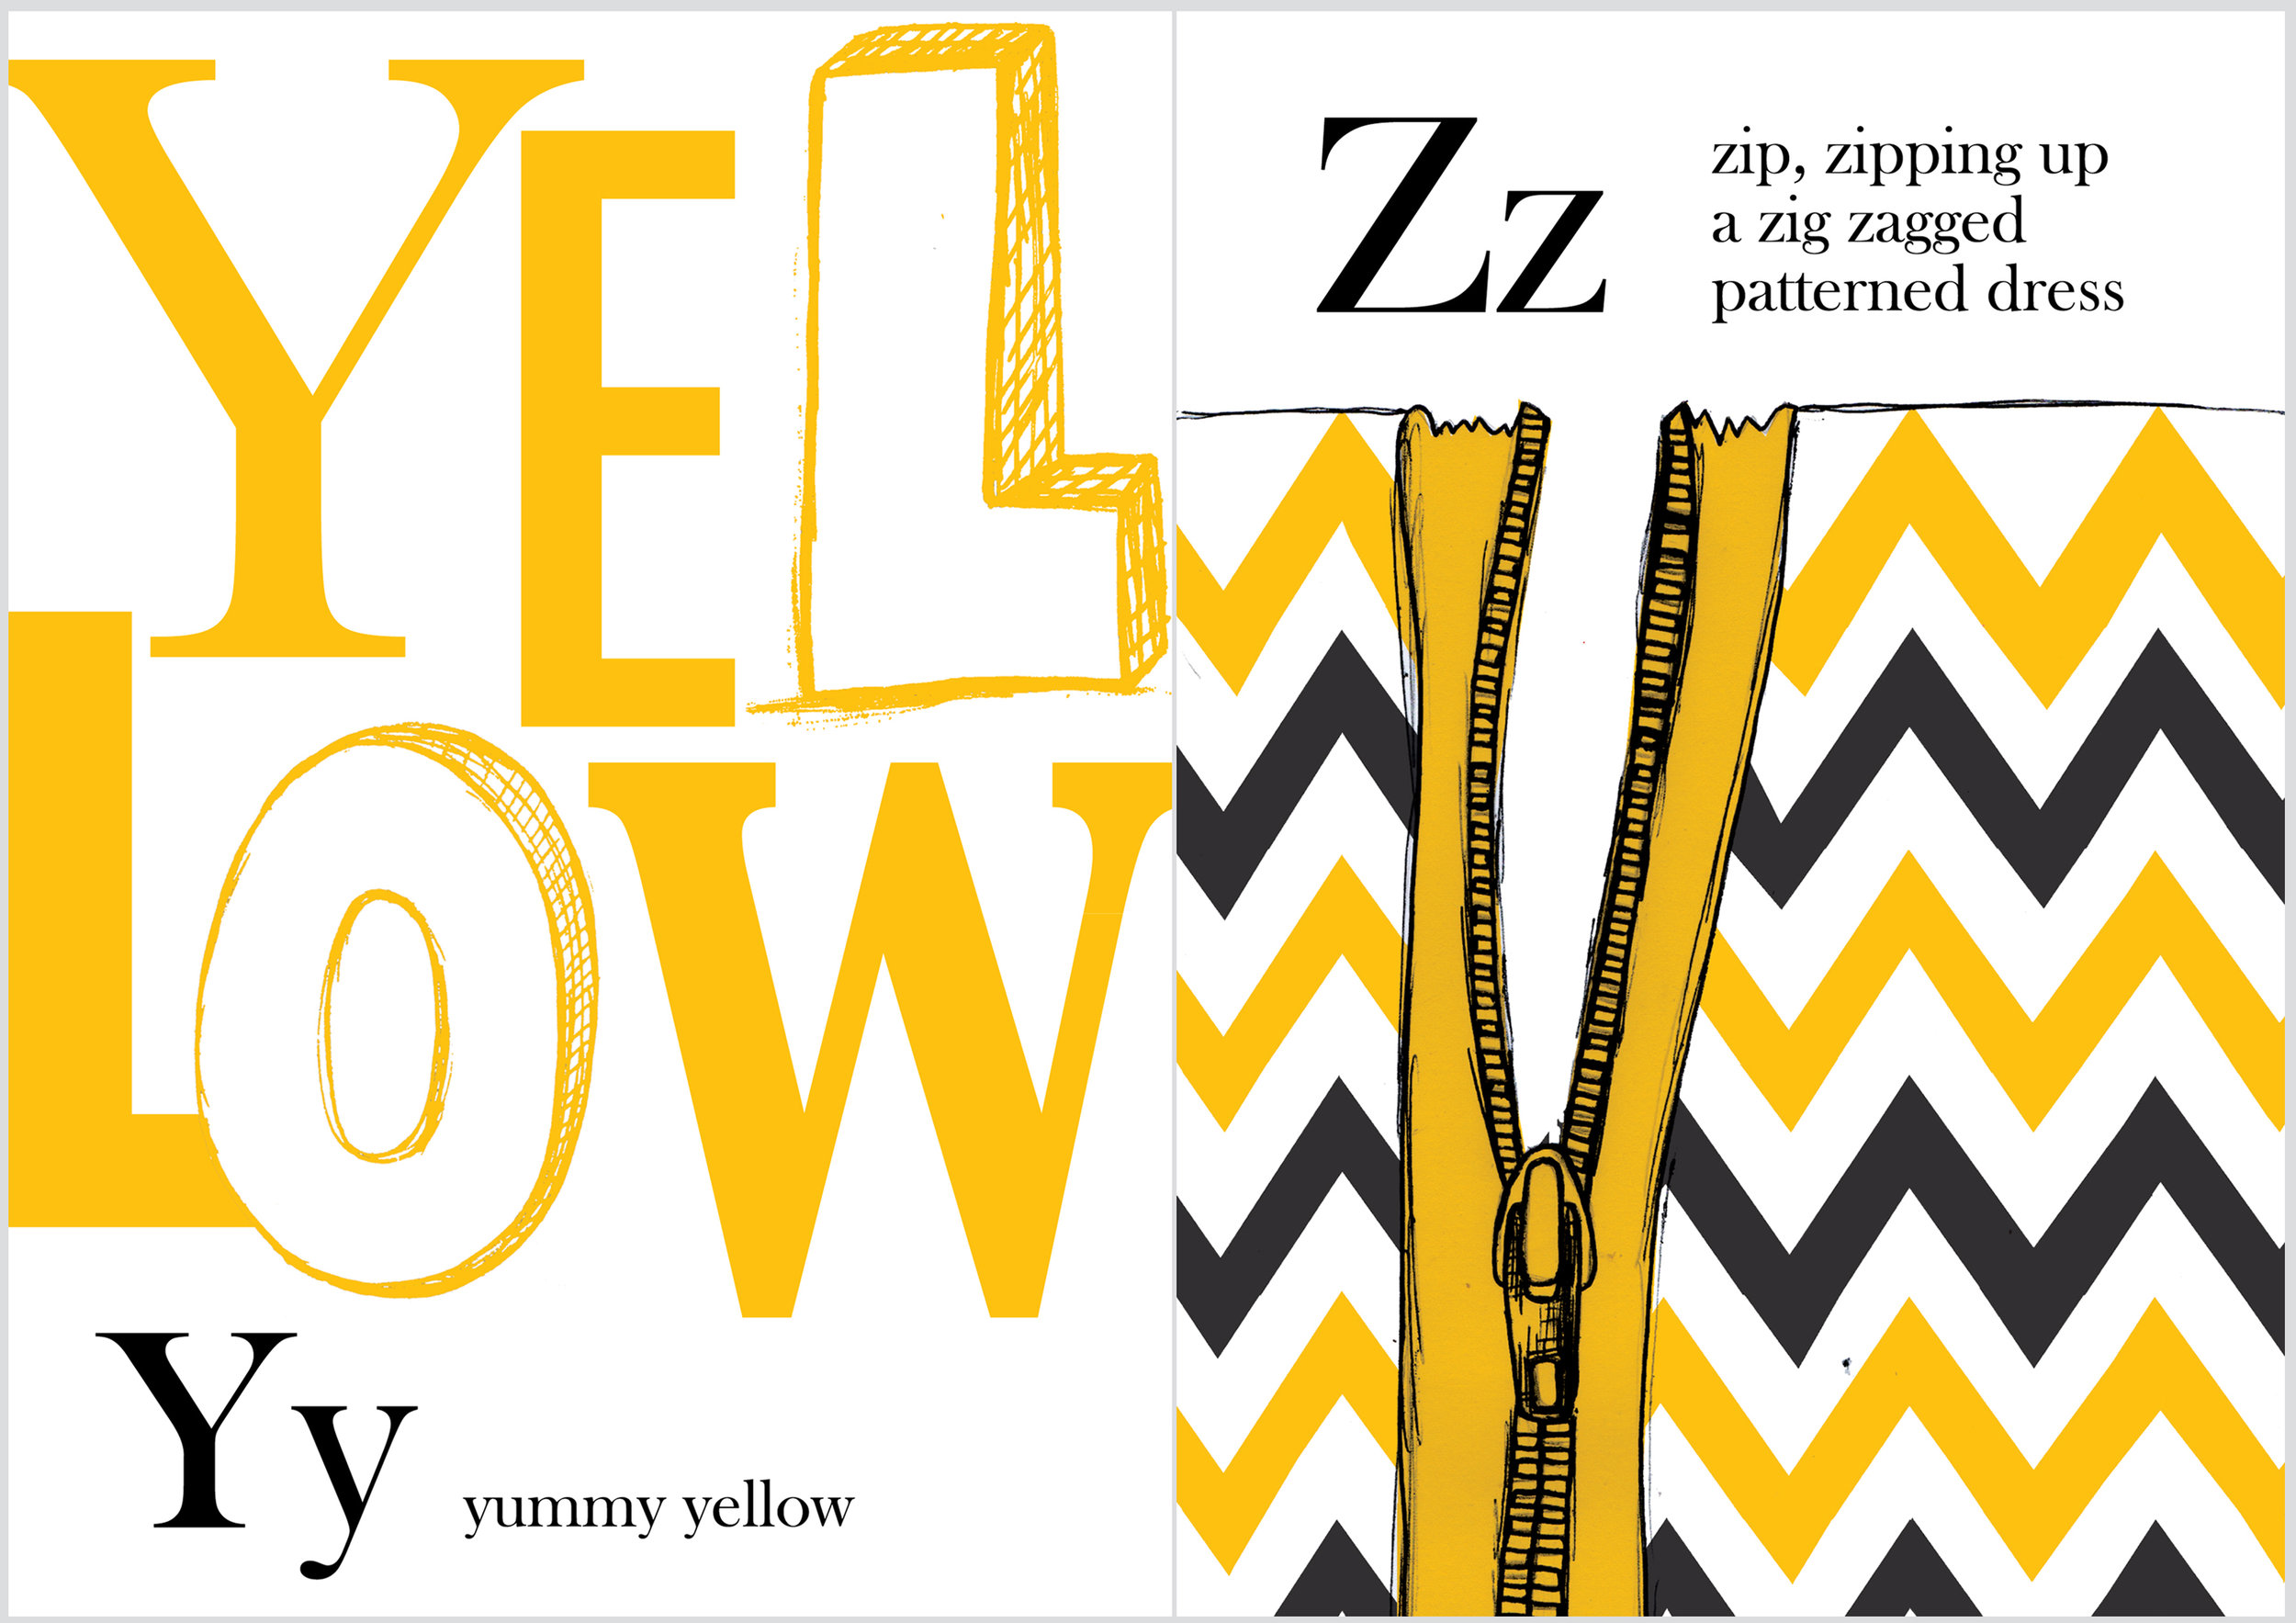 The above illustrations are from my self published book 'Learning my A to Z' Written and illustrated by Heidi Osten. 2014. A to Z is a colourful exploration of the alphabet. The capital and lower case letters work with bold hand drawn/computer generated illustrations. The black line drawings with crosshatched shading are paired with two colours on each page. The illustrations will entertain little eyes and ears with the interesting words and images.  Books contribute to children developing the knowledge, skills and attitudes that words and books can amuse, delight, comfort, illuminate, inform, and excite.  Reference- New Zealand Ministry of Education. (1996). Te Whāriki. He Whāriki Mātauranga mo nga Mokopuna o Aotearoa. Early childhood curriculum. Wellington, New Zealand: Learning Media.